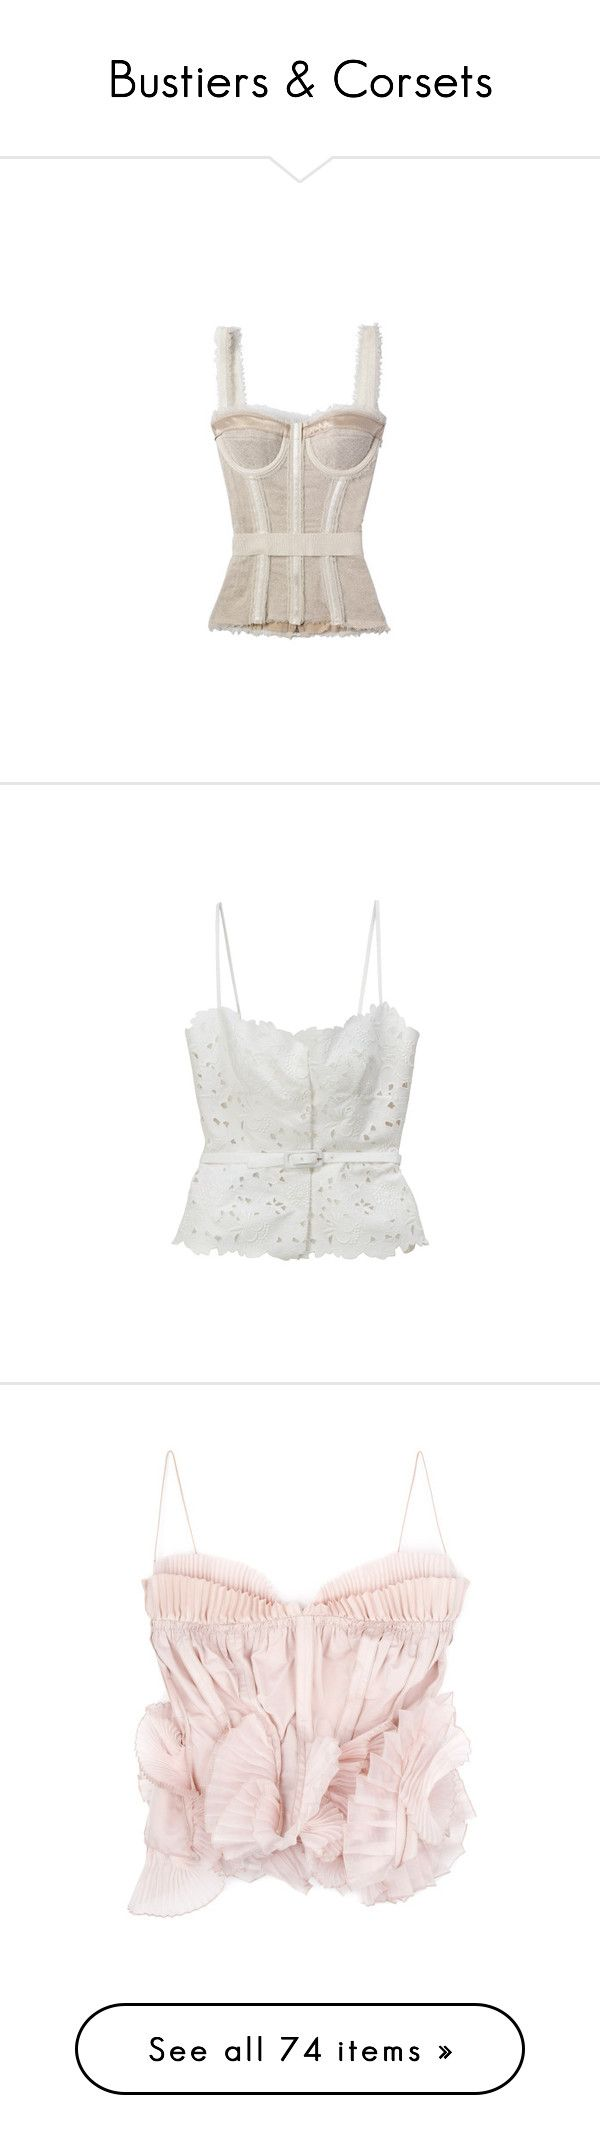 """""""Bustiers & Corsets"""" by sakuragirl ❤ liked on Polyvore featuring tops, corsets, shirts, lingerie, dolce&gabbana, tank tops, valentino, shirts & tops, intimates and lingerie bustier"""